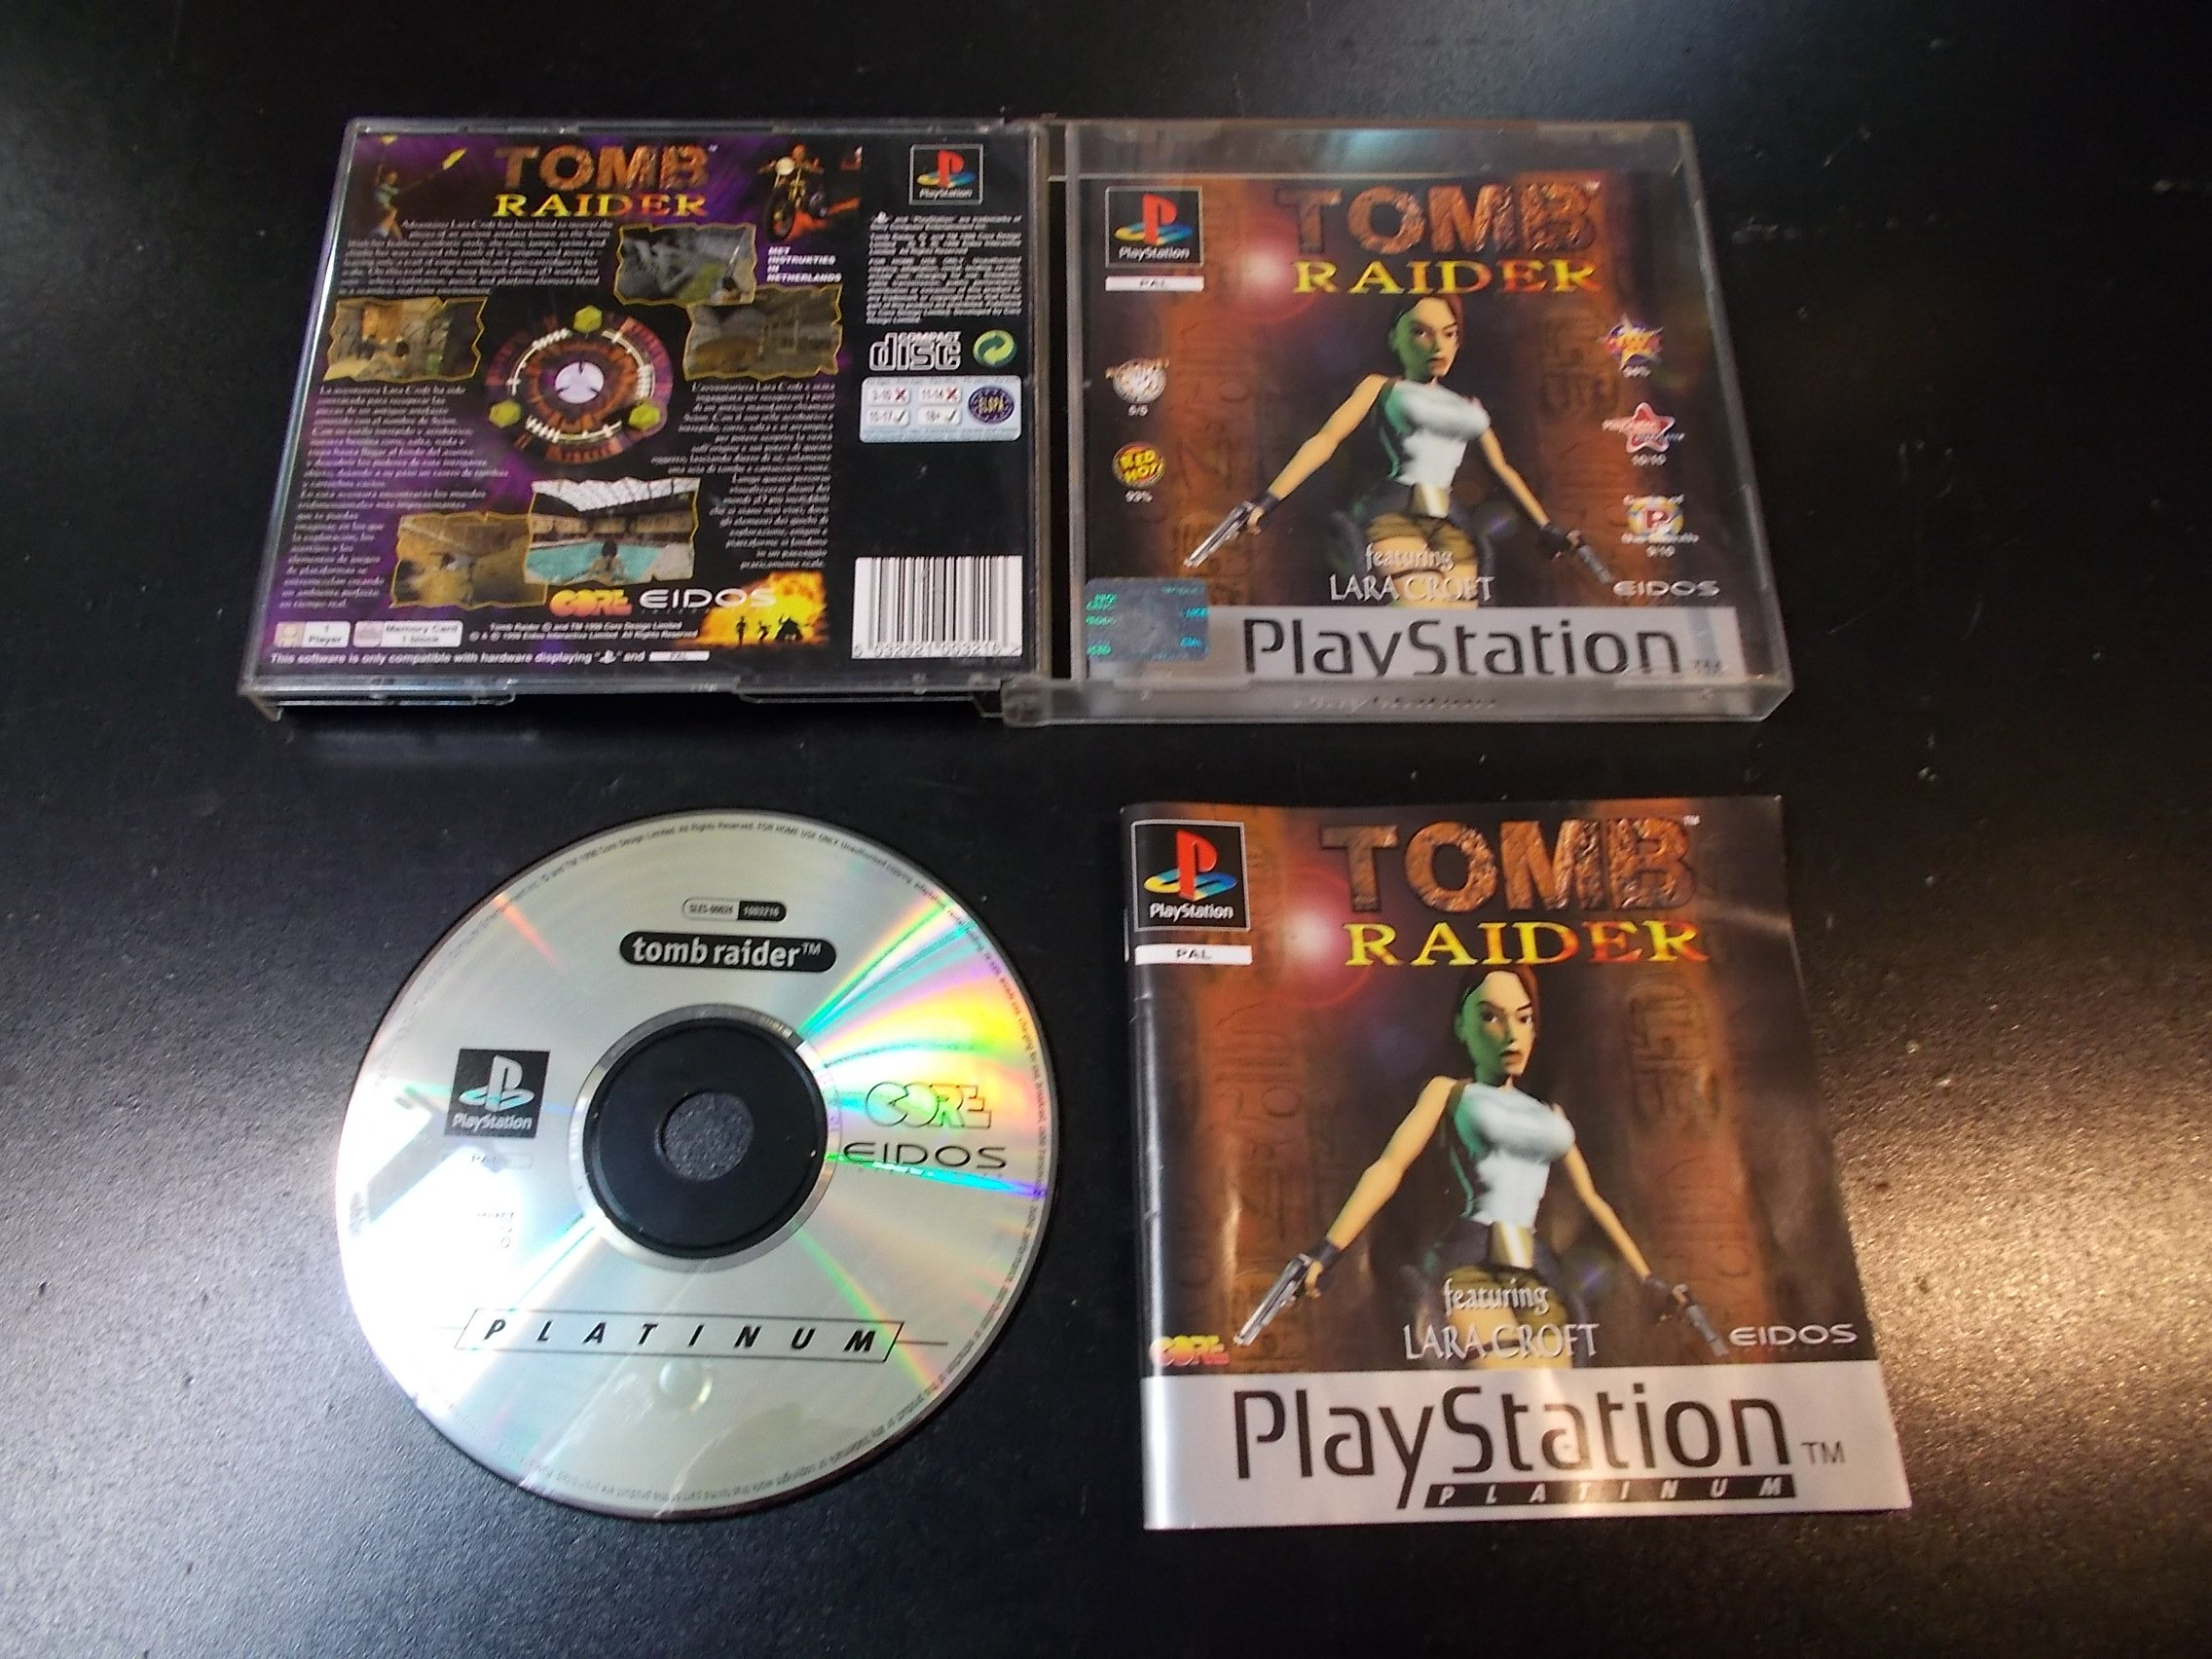 TOMB RAIDER - Lara Croft - GRA Psx Ps1 Sklep